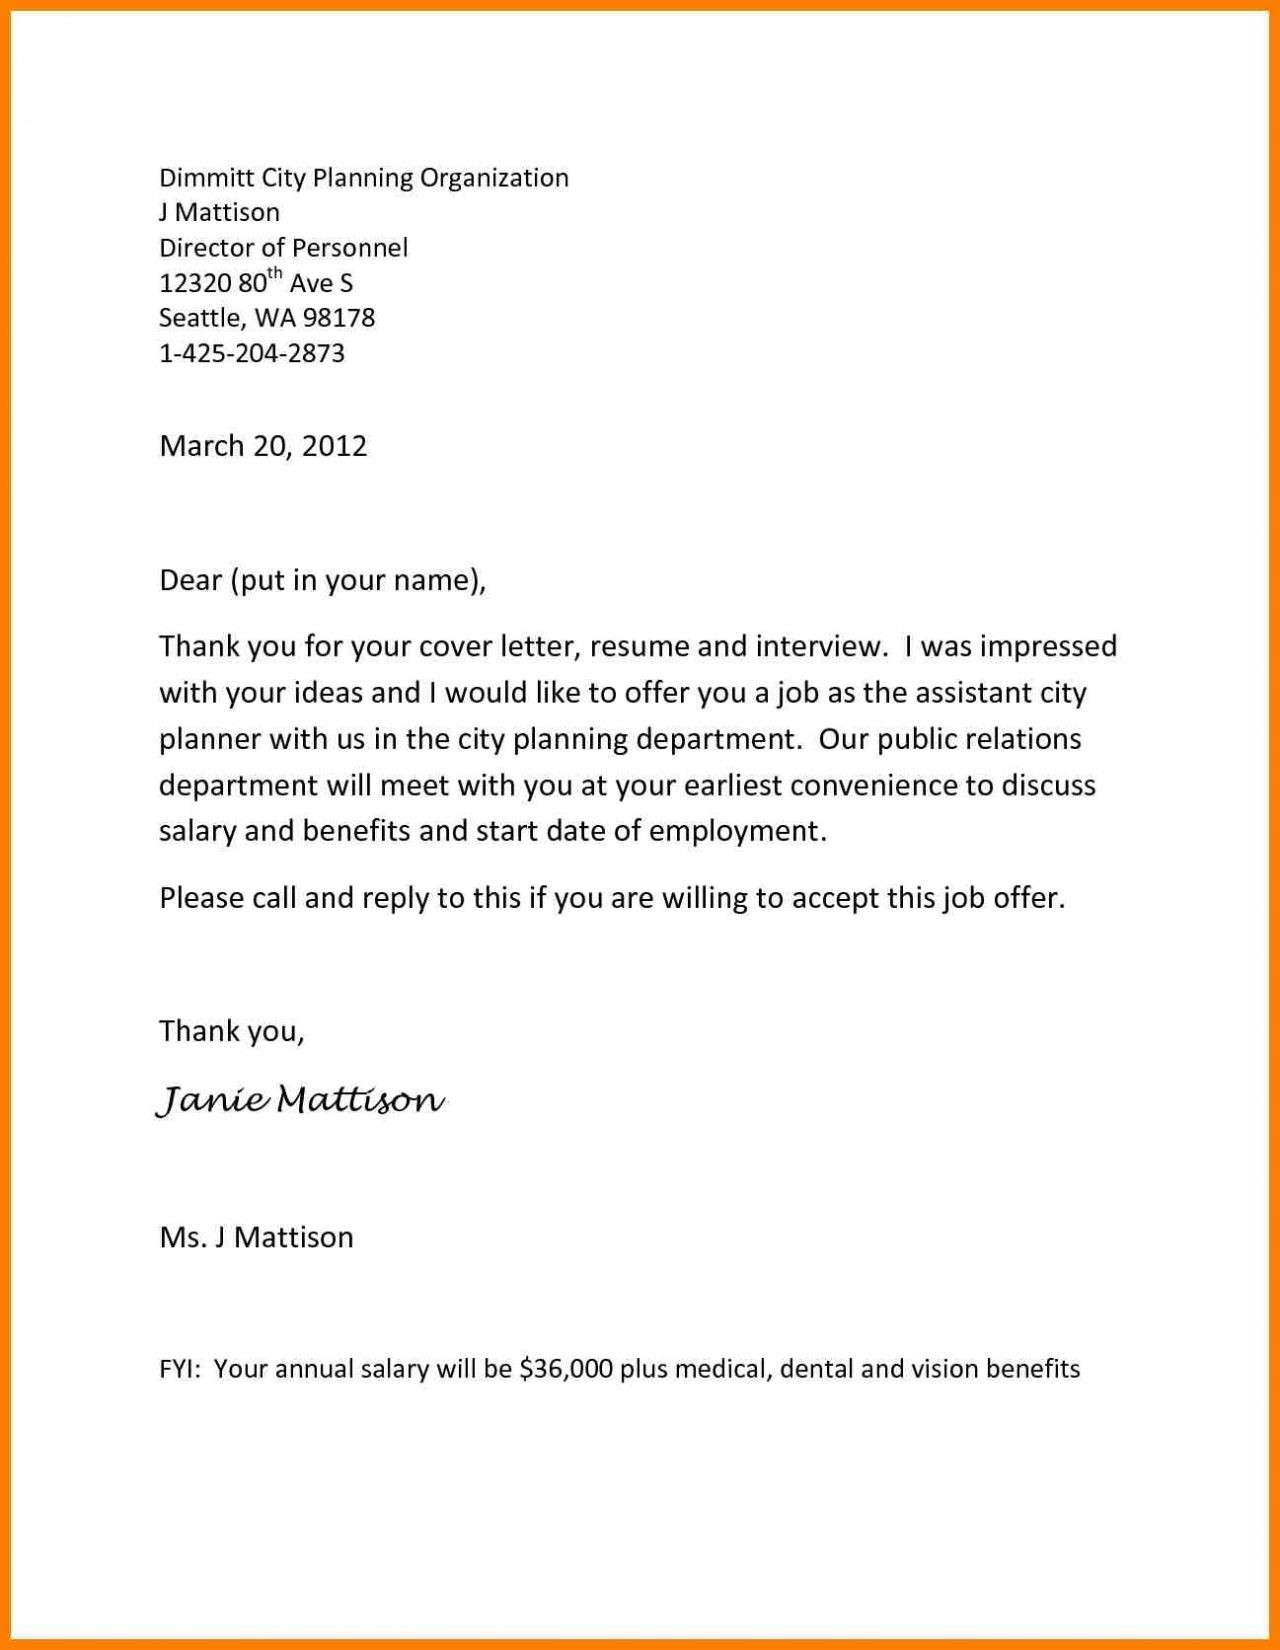 Work Offer Letter Template - Job Fer Letter Template Us Copy Od Consultant Cover Letter Fungram